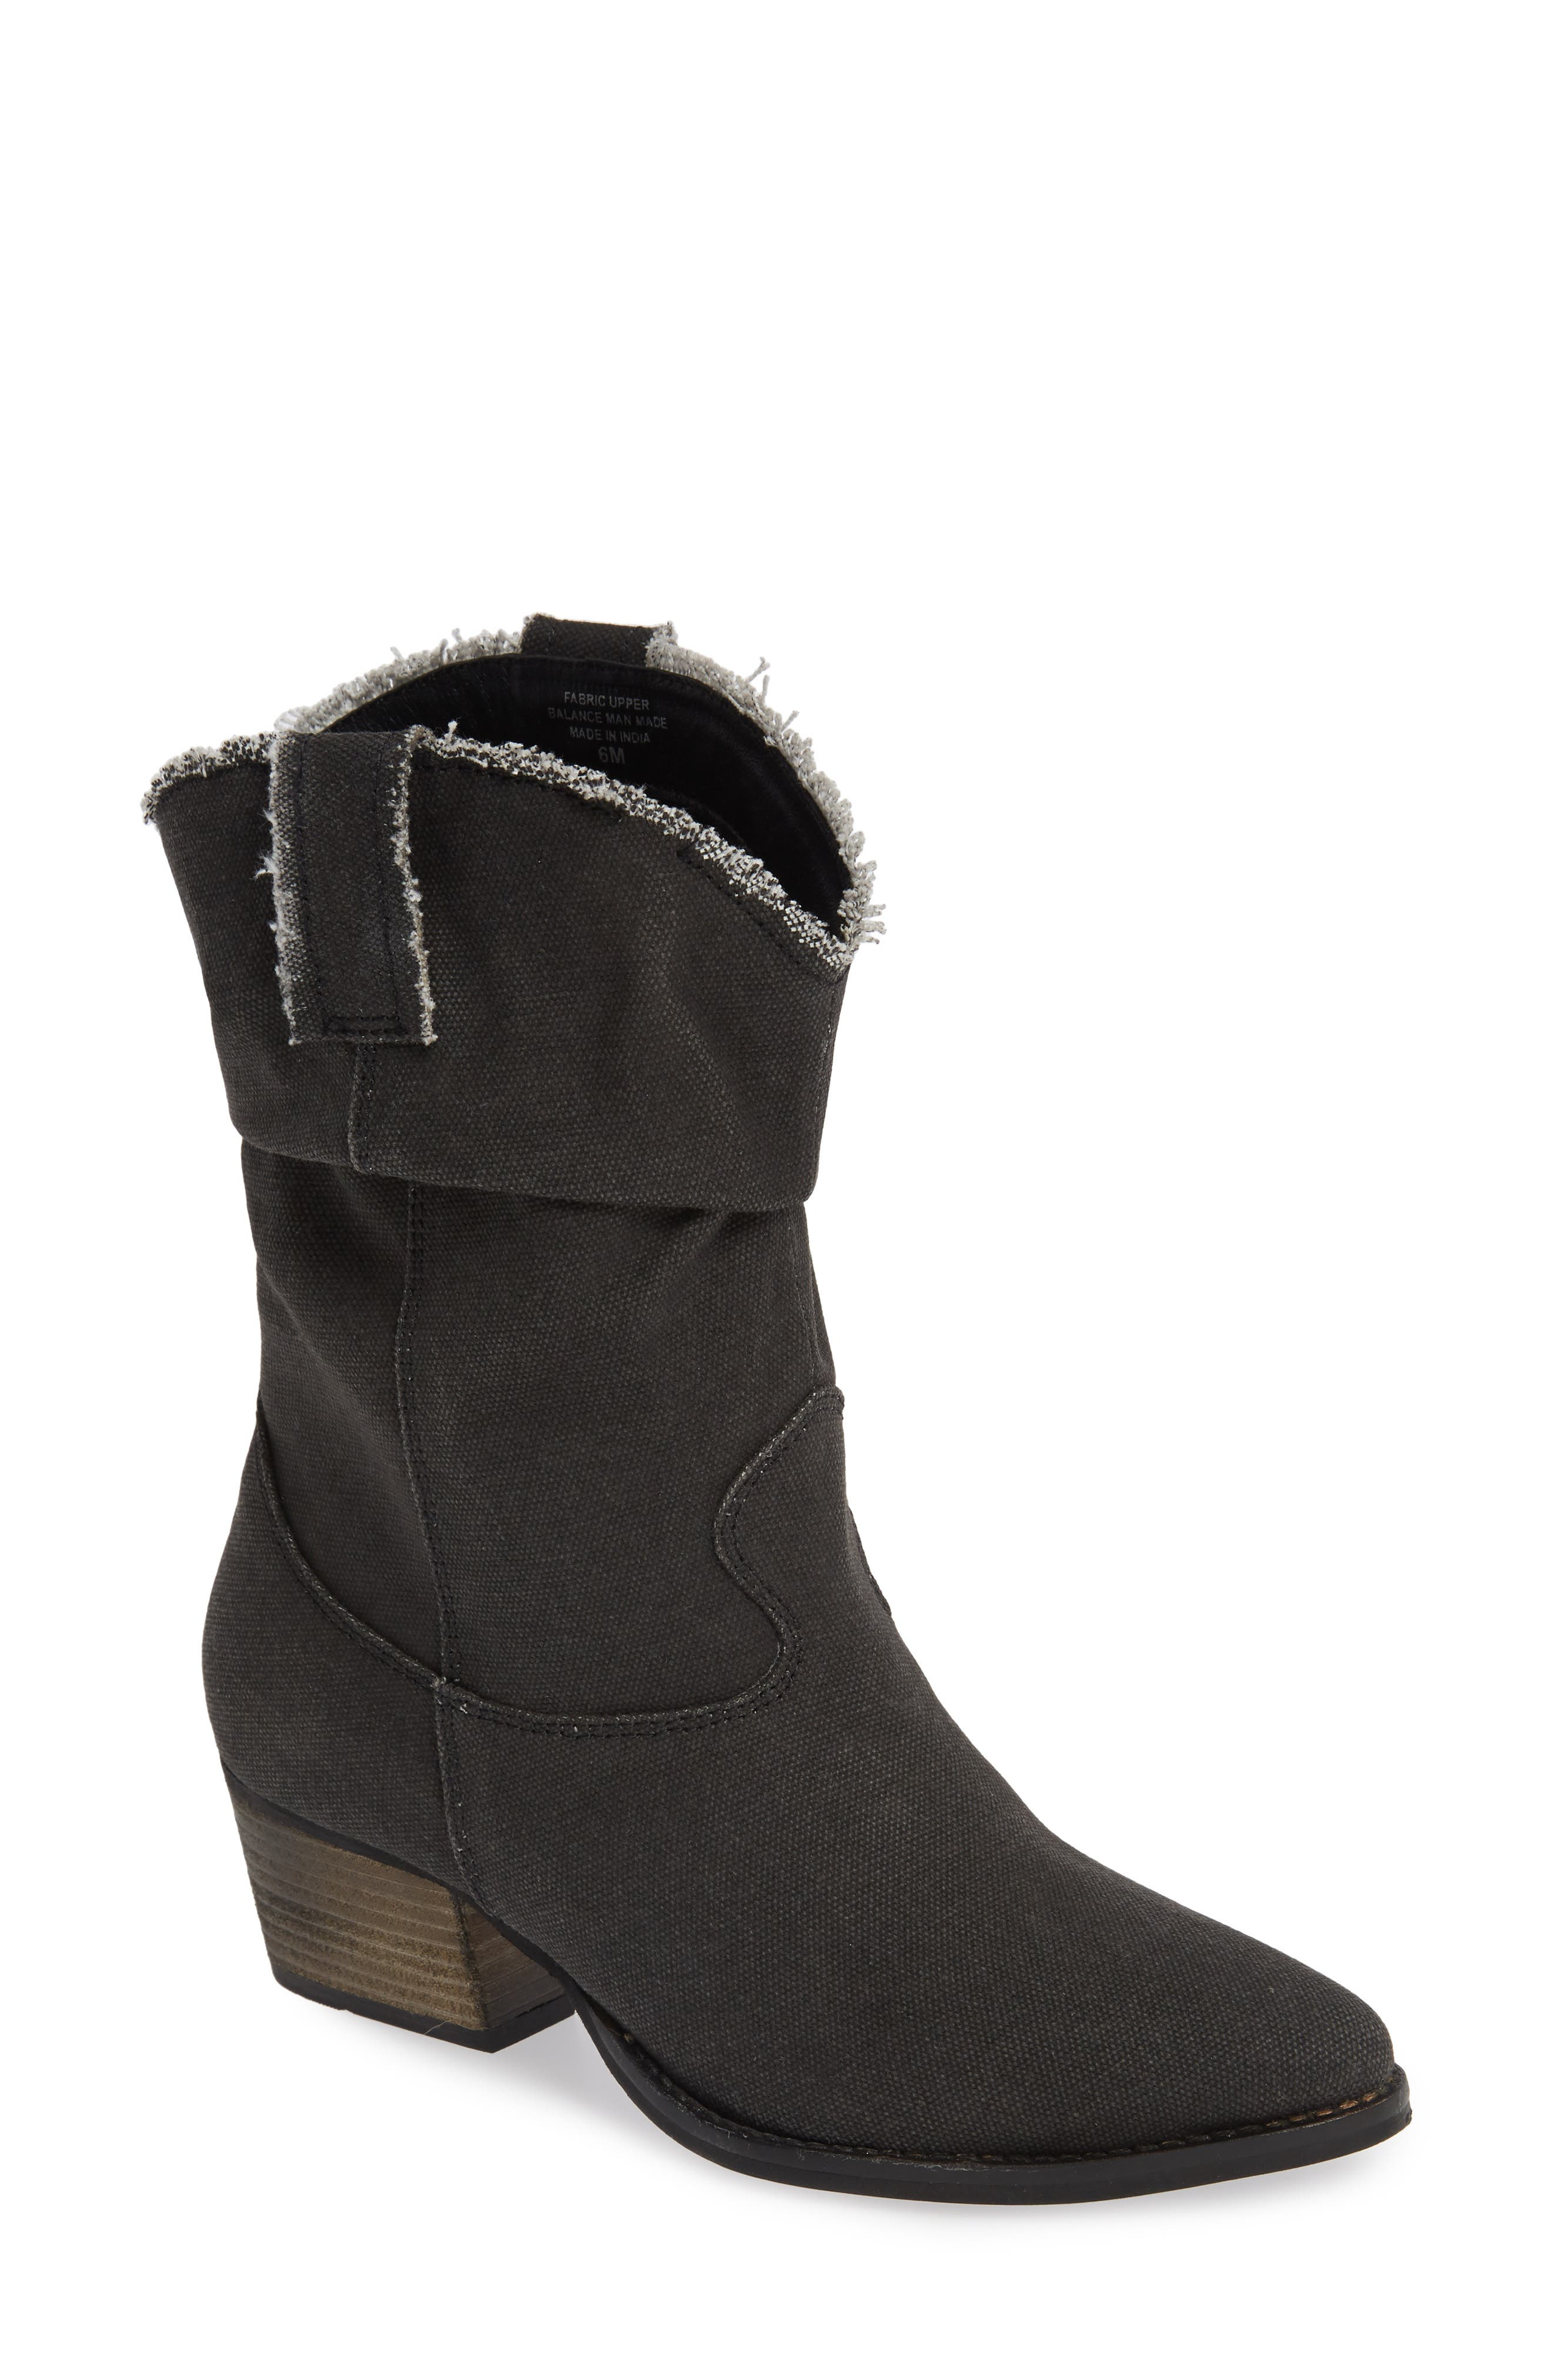 Sale: Women's Charles By Charles David Boots & Booties